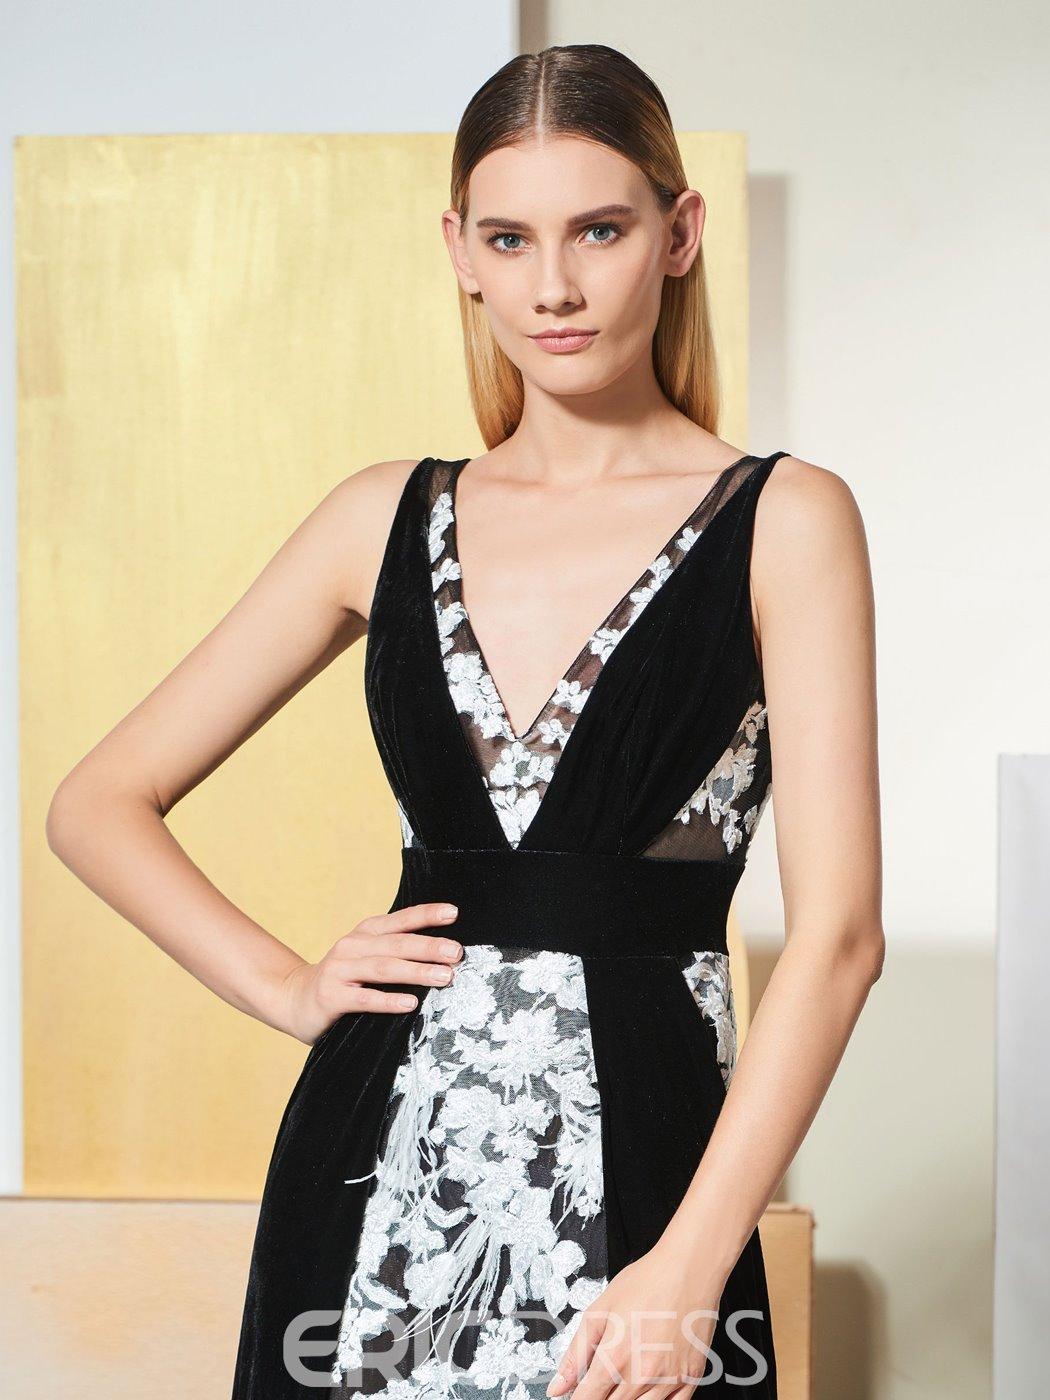 Ericdress A Line V Neck Black Evening Dress With White Applique